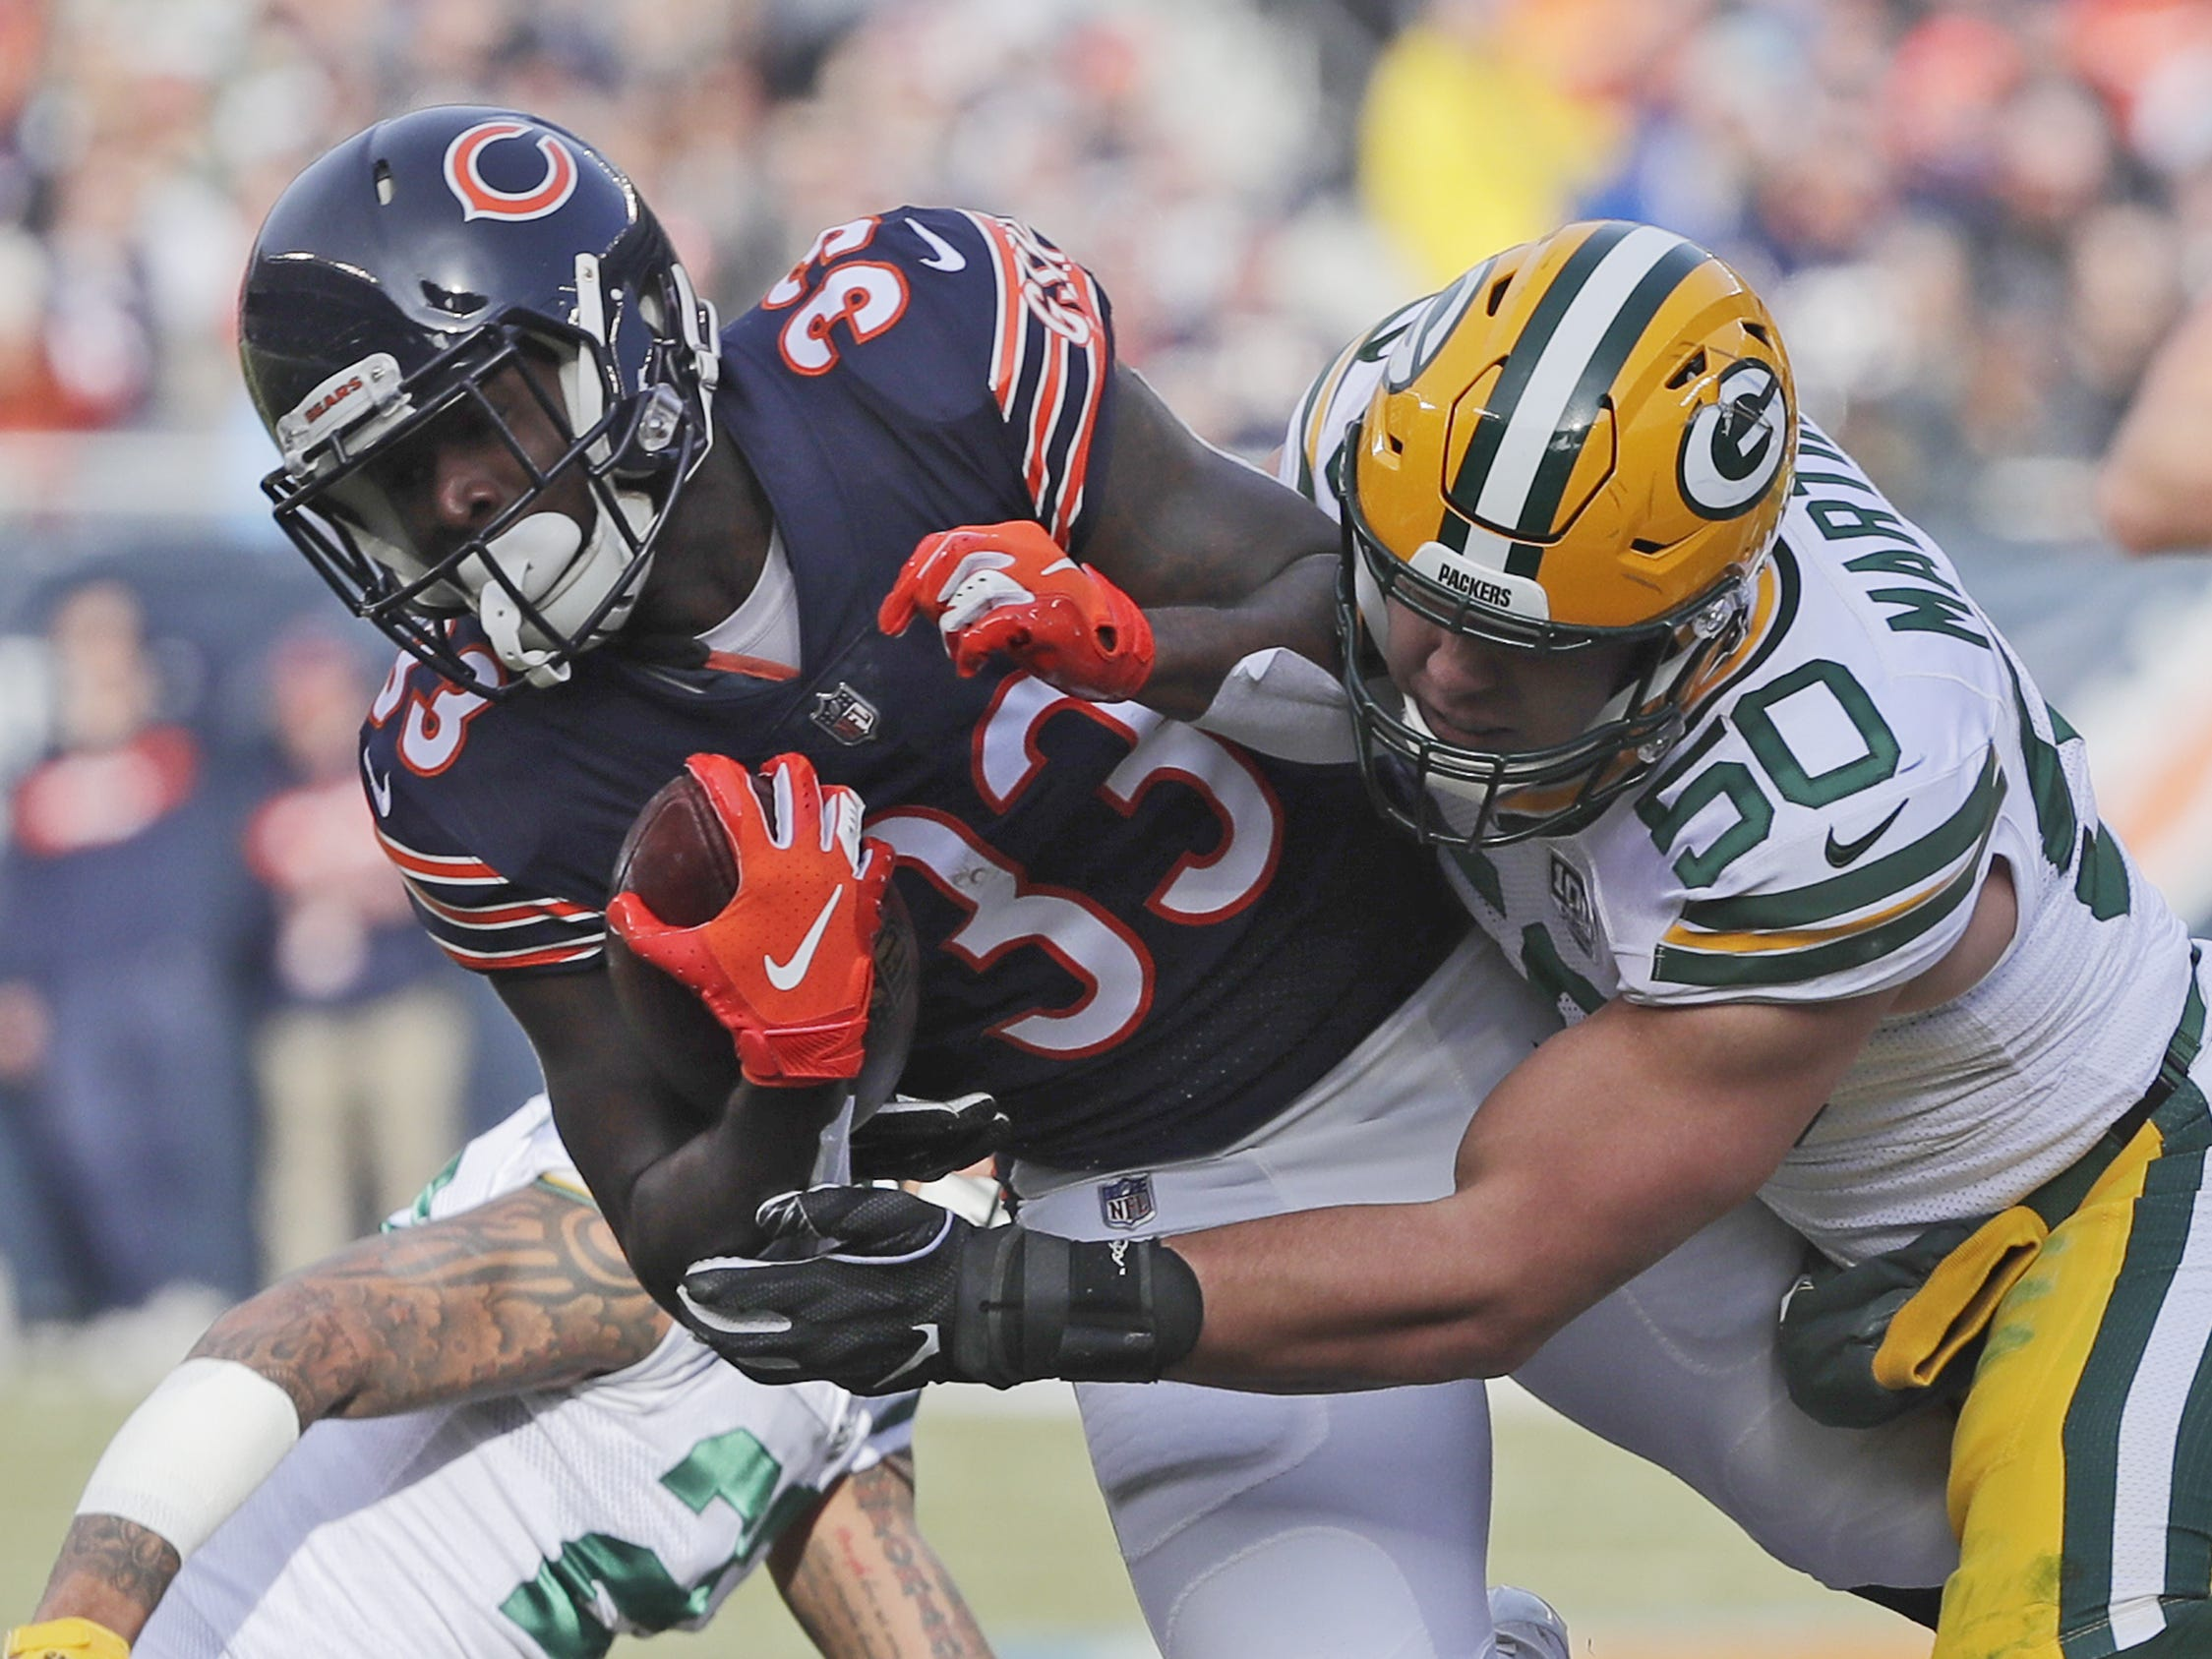 Green Bay Packers inside linebacker Blake Martinez (50) tackles Chicago Bears running back Taquan Mizzell (33) in the first quarter at Soldier Field on Sunday, December 16, 2018 in Chicago, Illinois. Adam Wesley/USA TODAY NETWORK-Wis